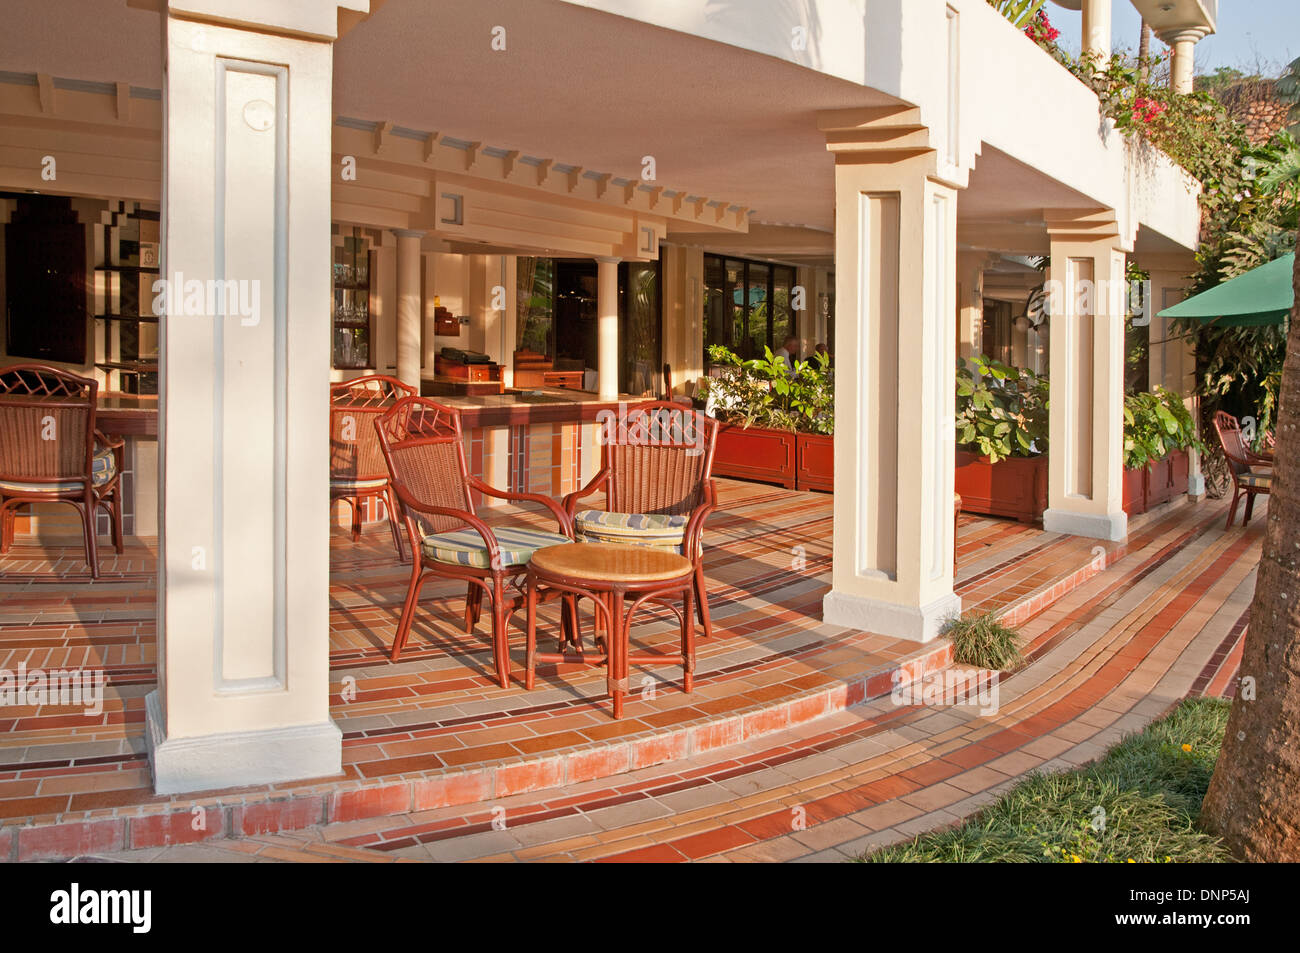 Nairobi Serena Hotle terrace adjacent to the swimming pool - Stock Image